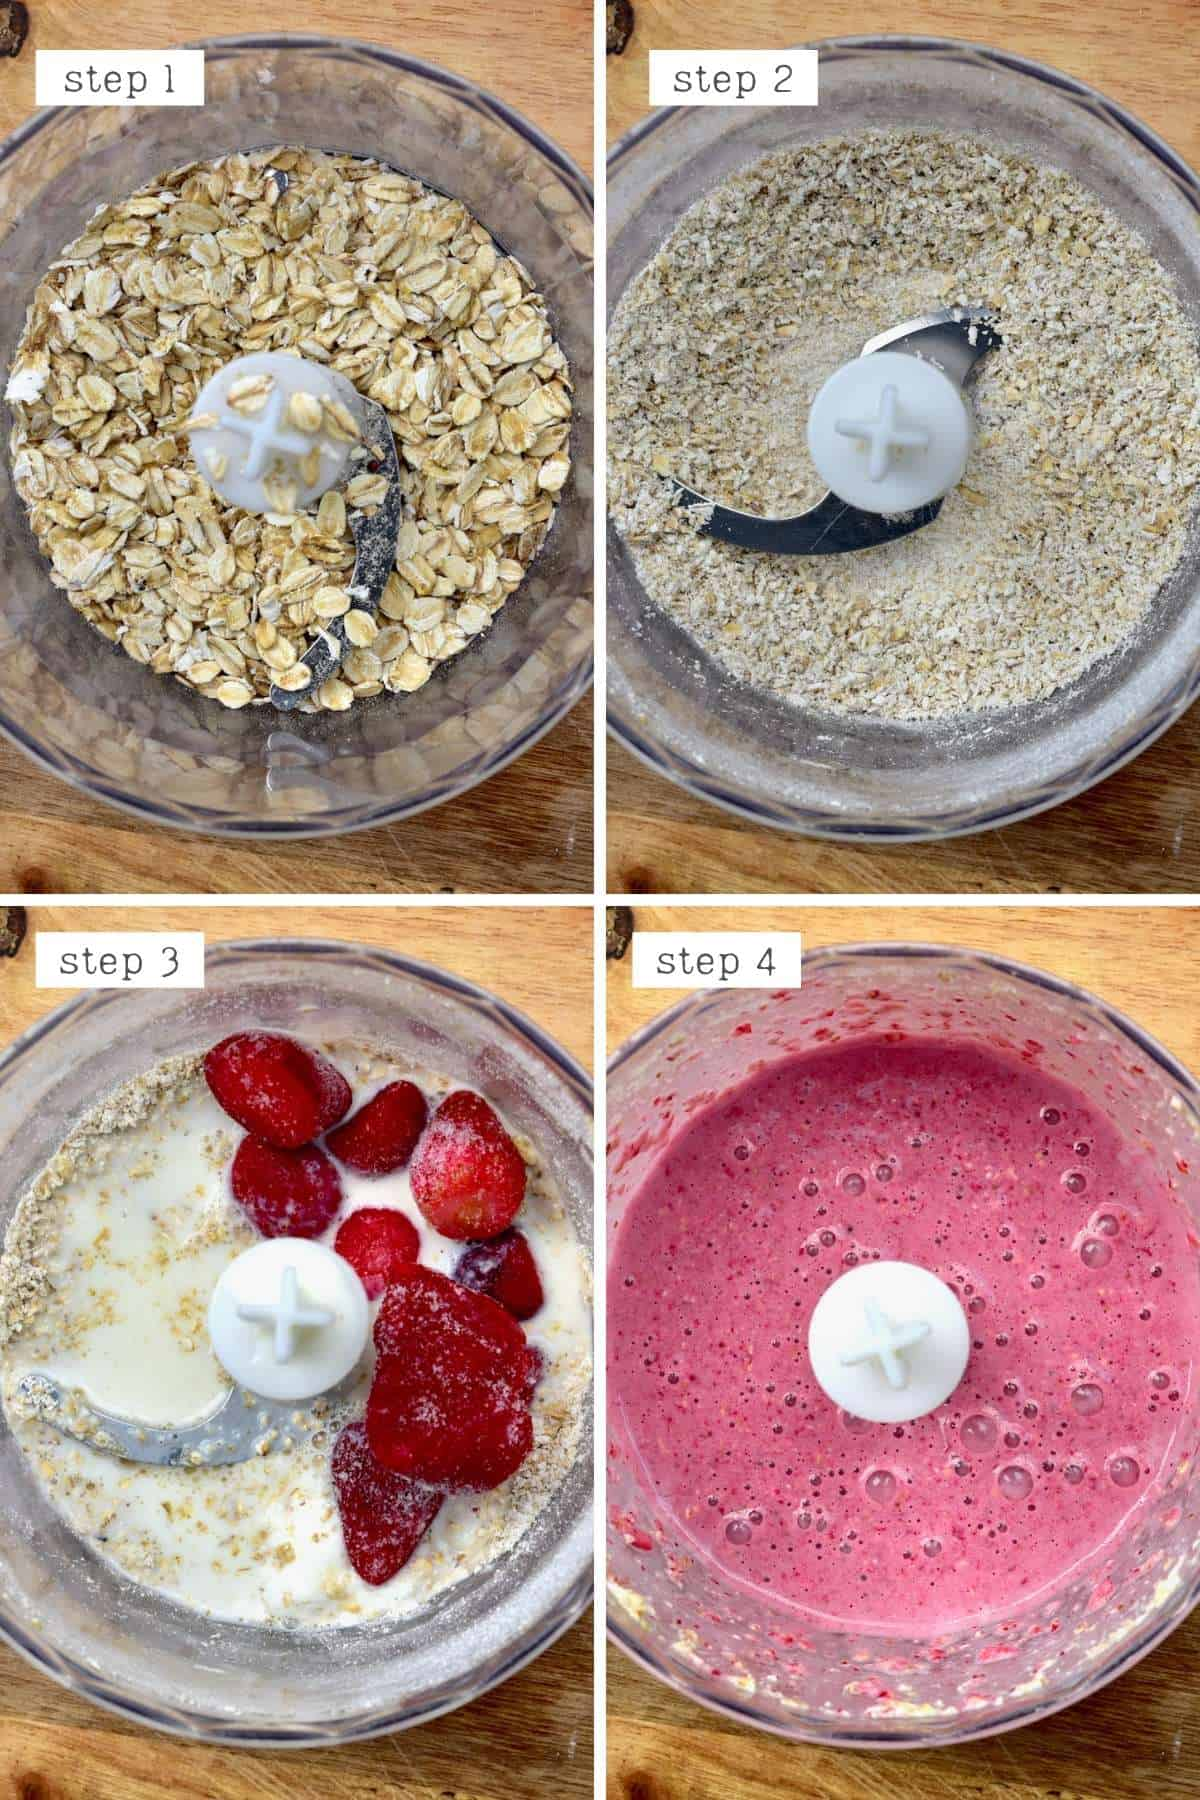 Steps for making strawberry oats